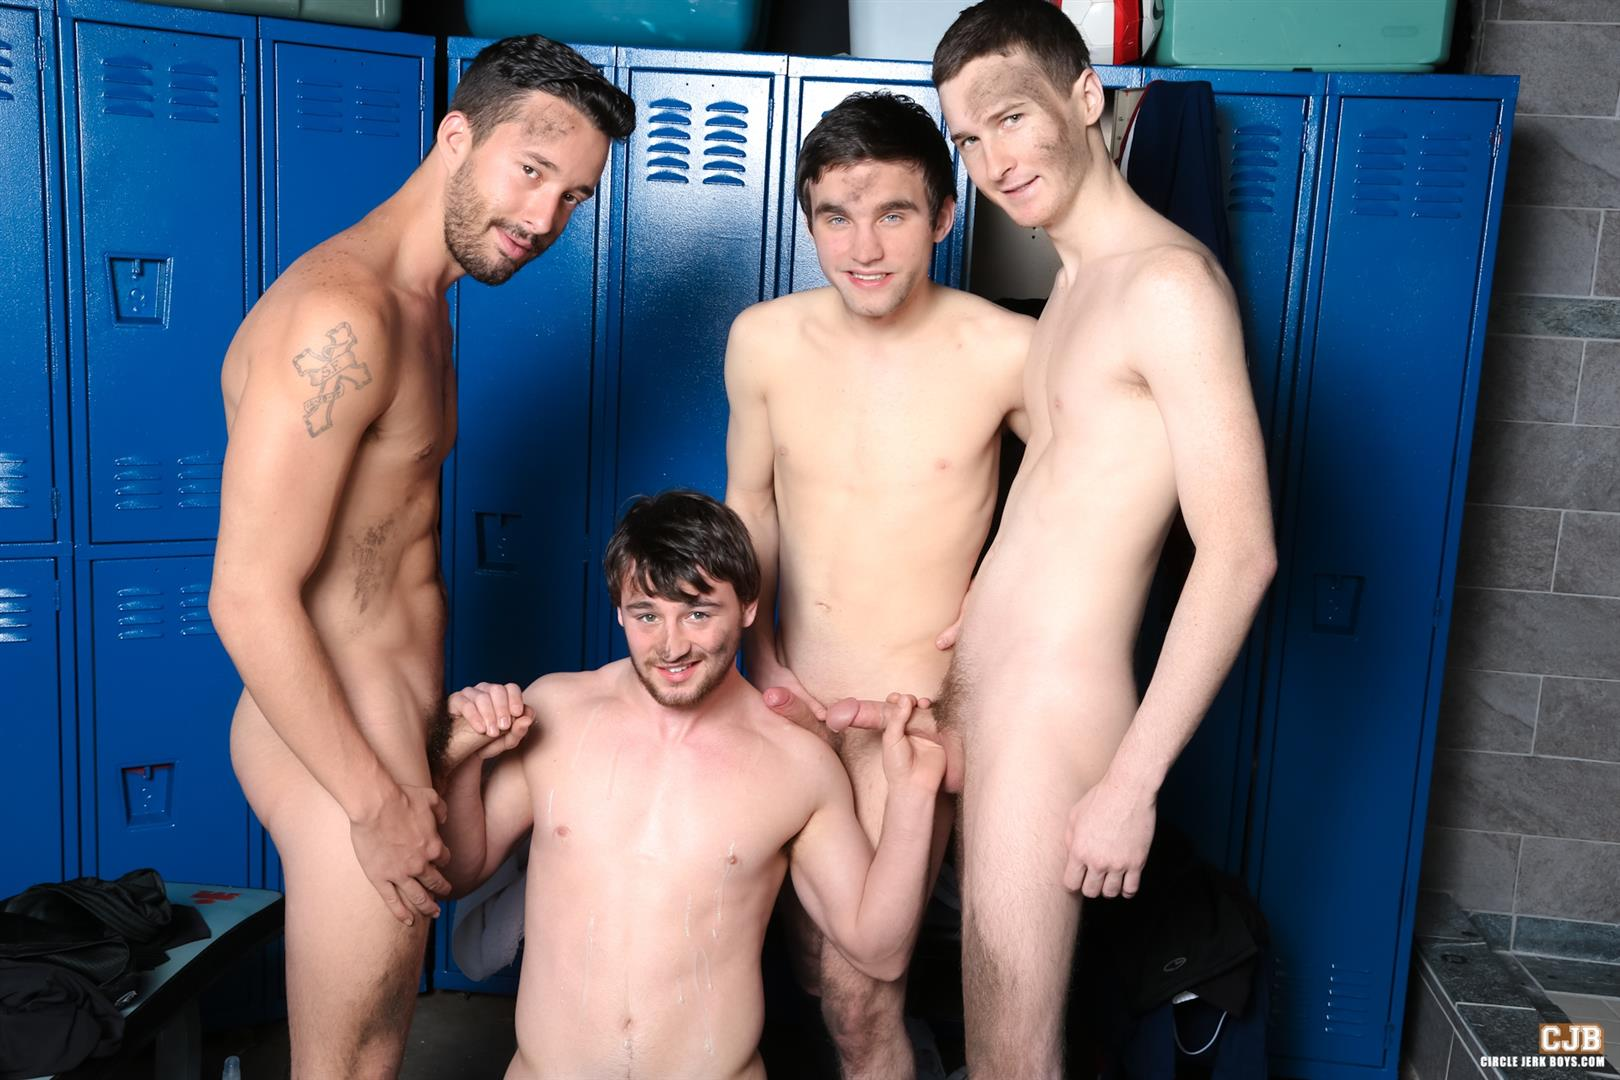 Circle-Jerk-Boys-Andrew-Collins-and-Isaac-Hardy-and-Josh-Pierce-and-Scott-Harbor-Soccer-Guys-Sucking-Cock-Amateur-Gay-Porn-14 After the Game, Soccer Plays Sucking Cock In The Locker Room